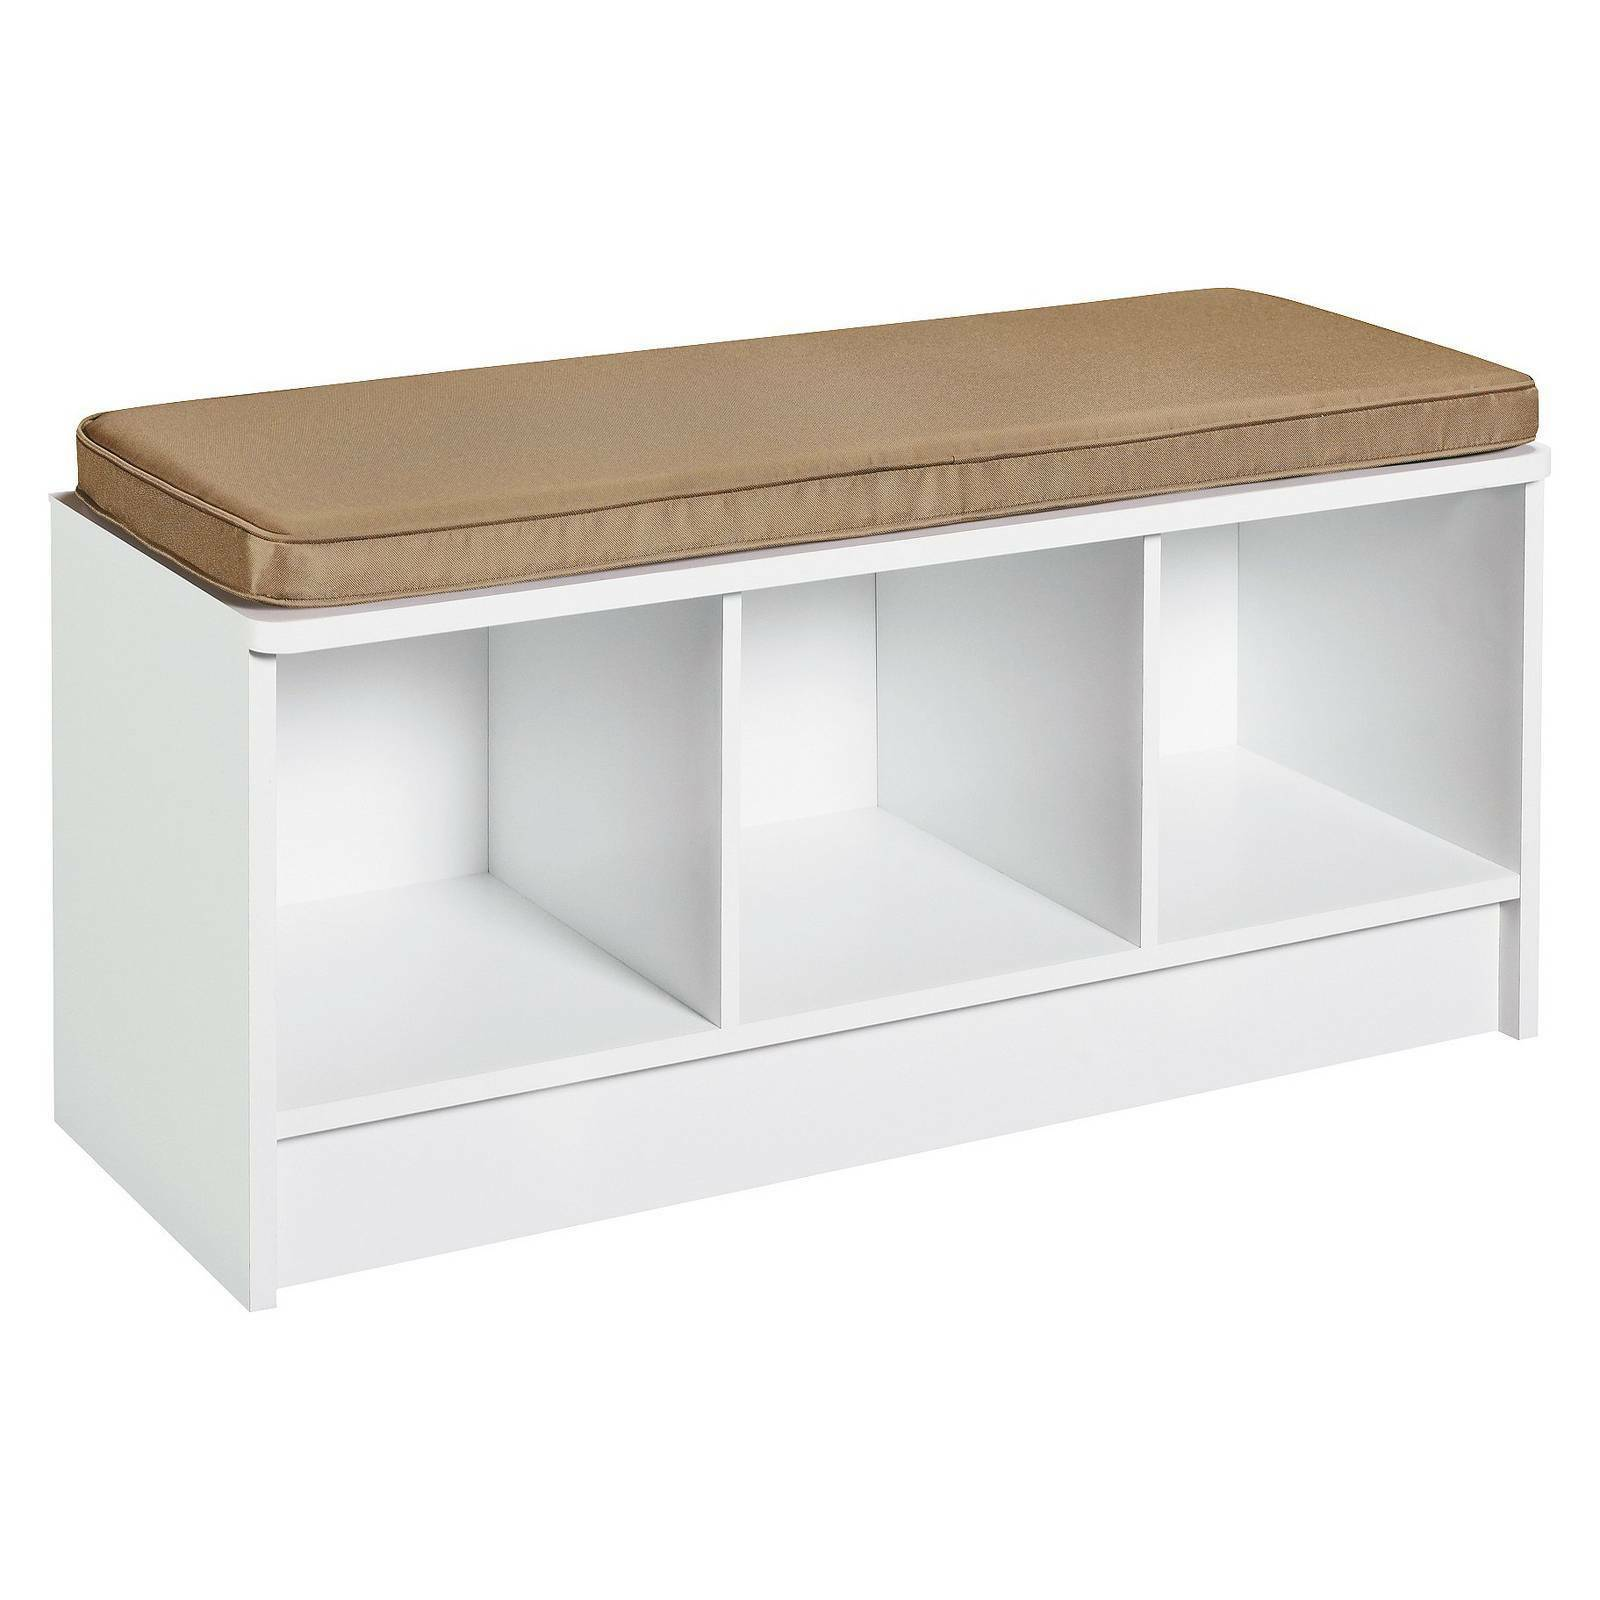 cube wayfair pdx reviews wood mills furniture storage andover cyril bench